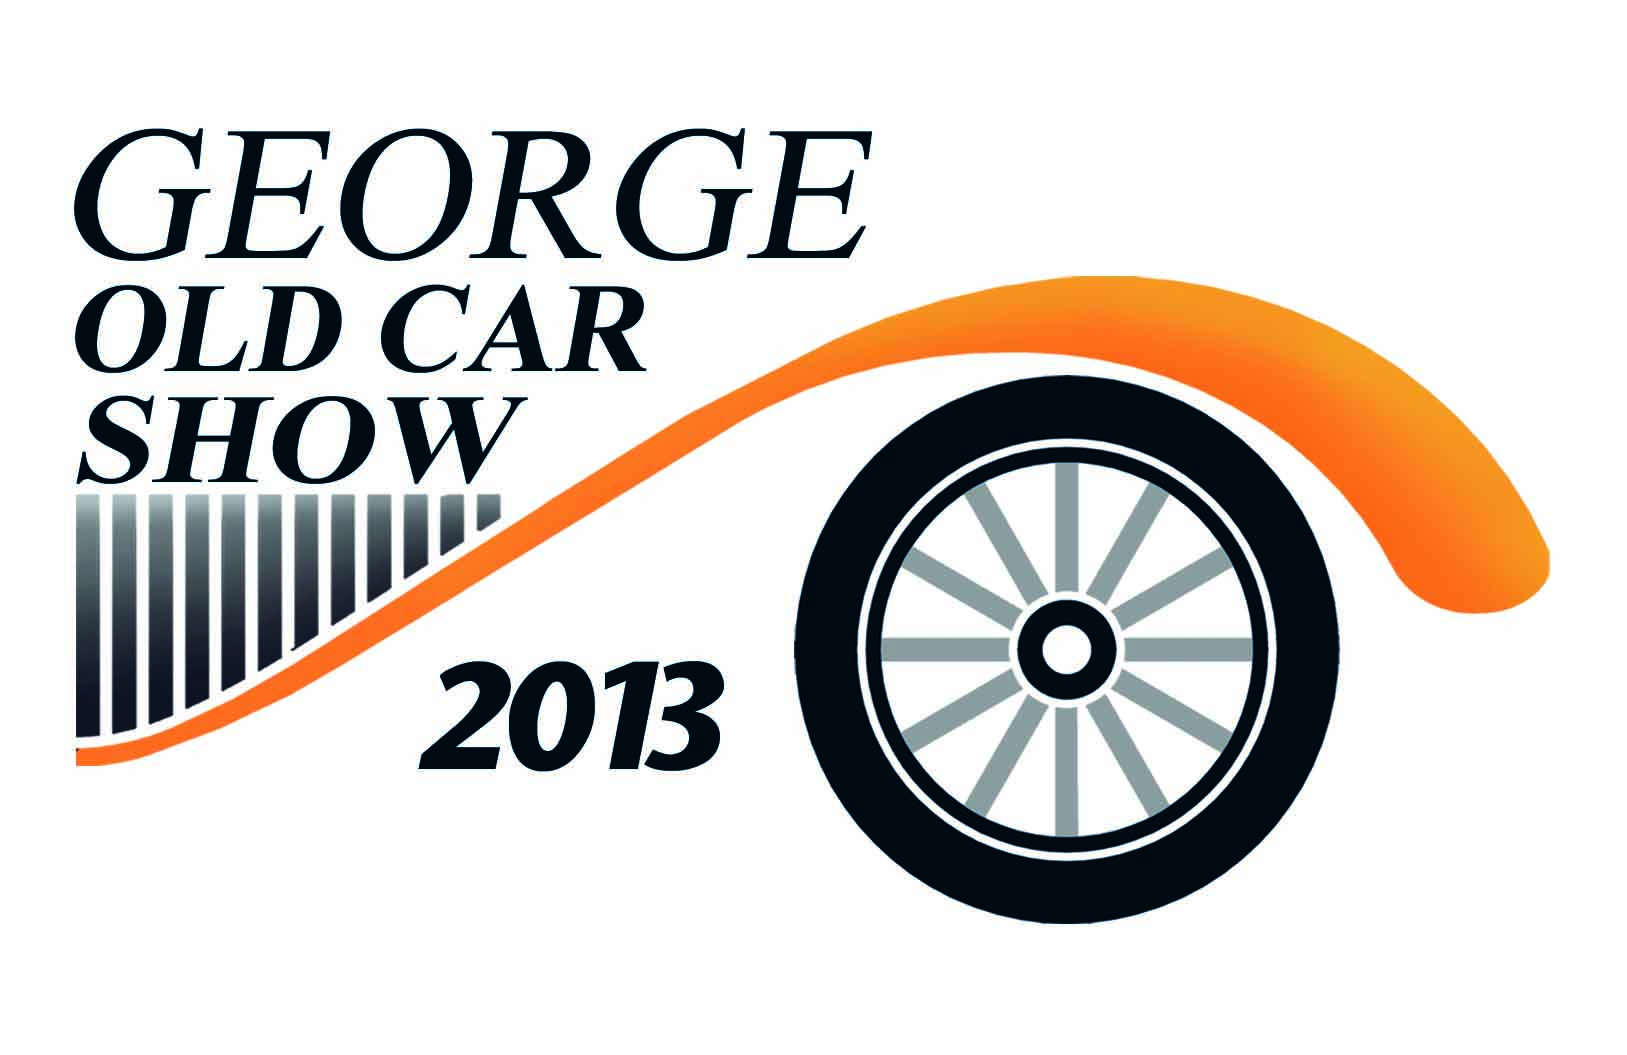 http://clickoncars.co.za/images/stories/old car show logo 2013 transparent.jpg